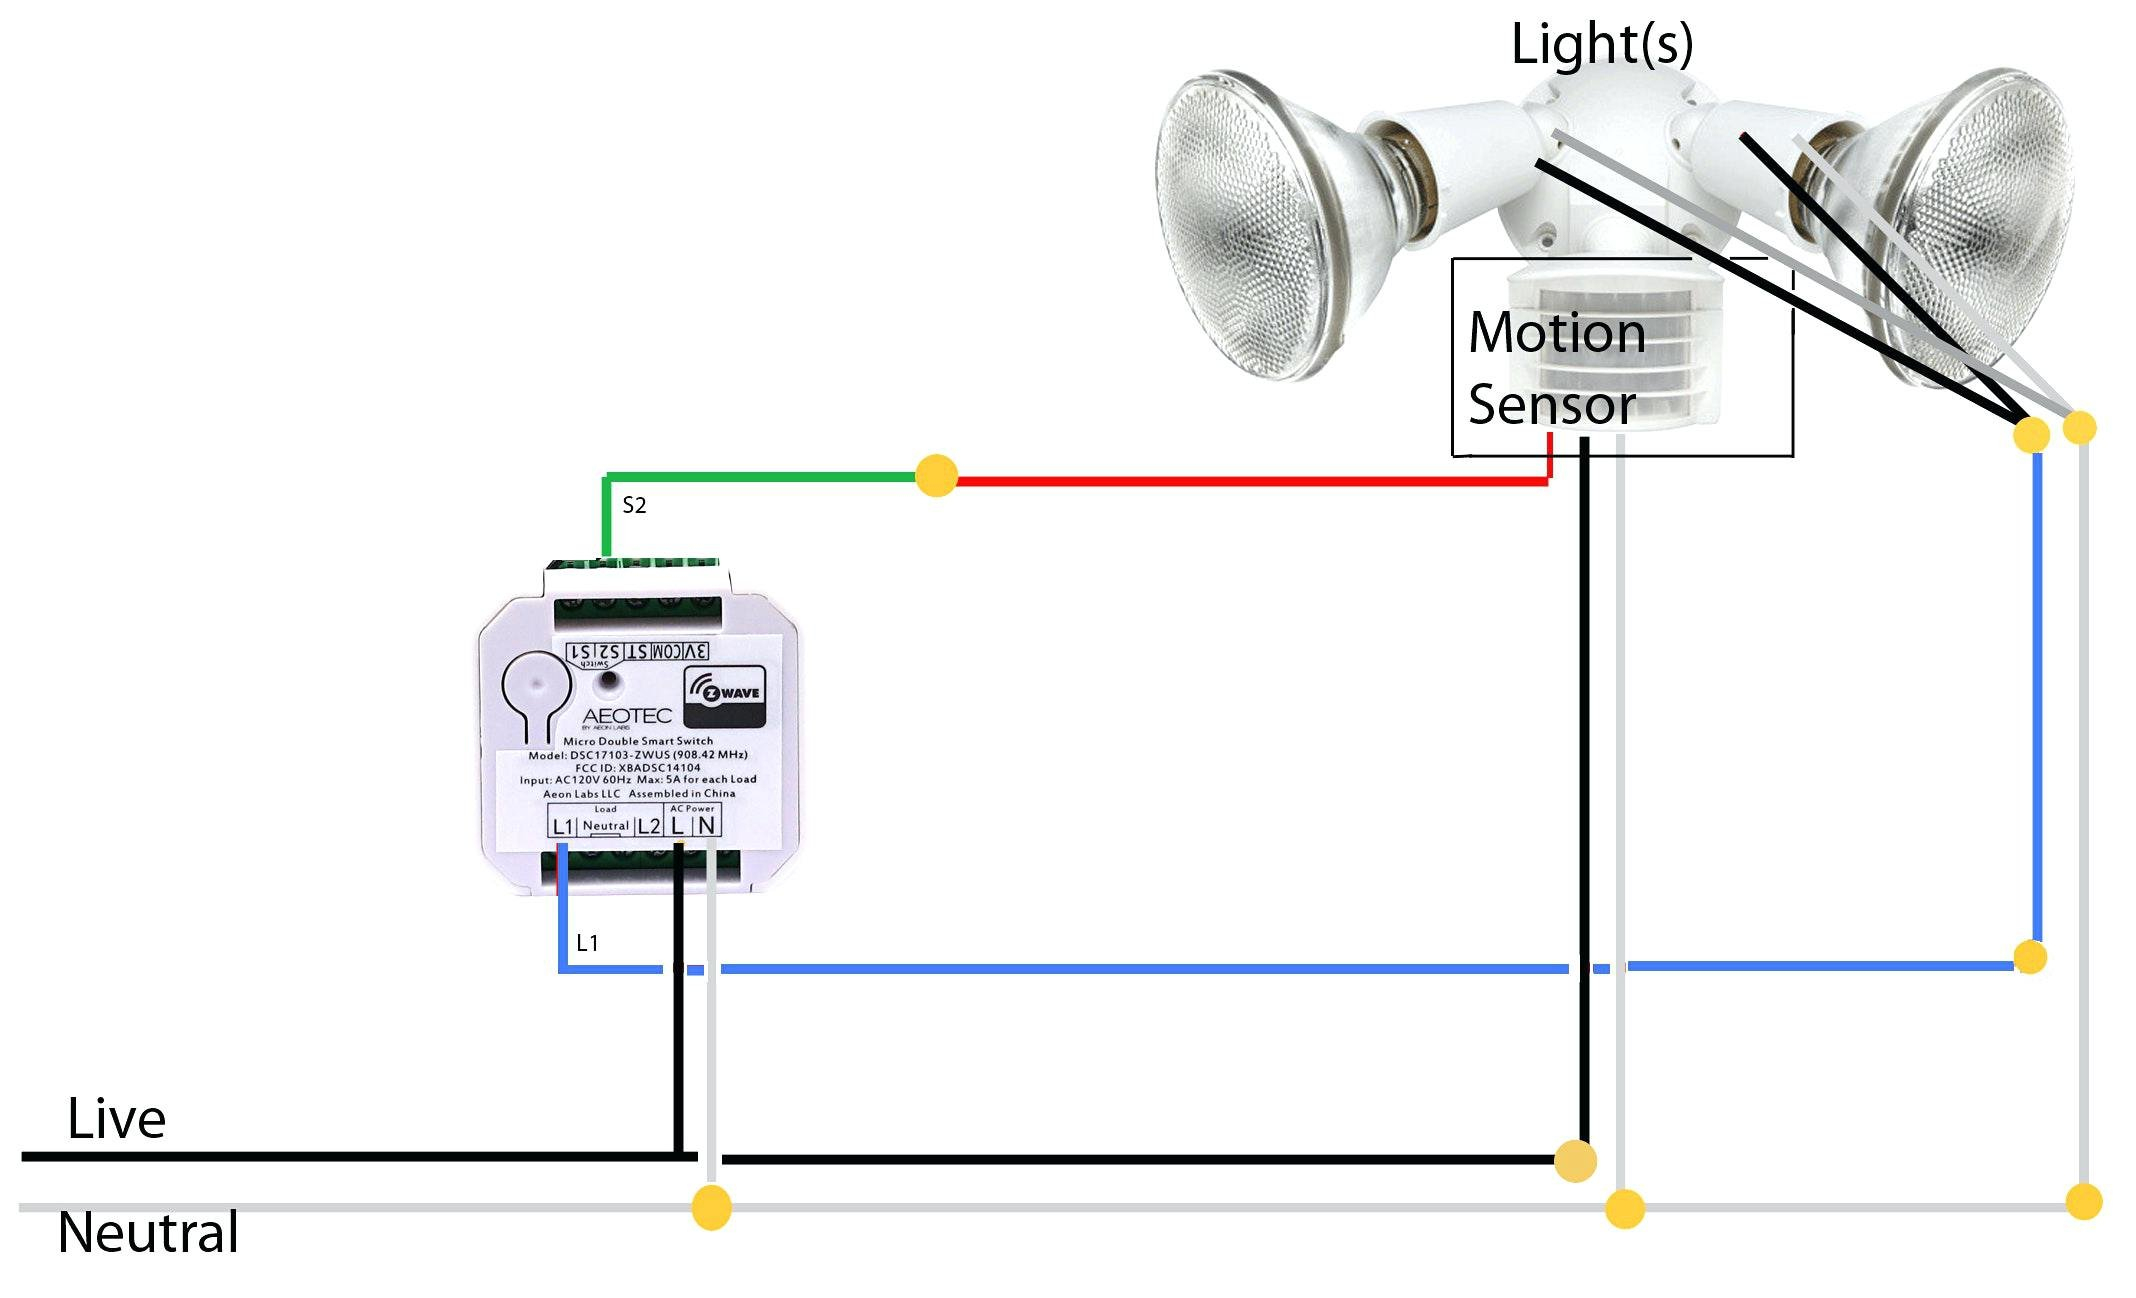 Zenith Motion Sensor Light Wiring Diagram | Wiring Diagram - Heath Zenith Motion Sensor Light Wiring Diagram